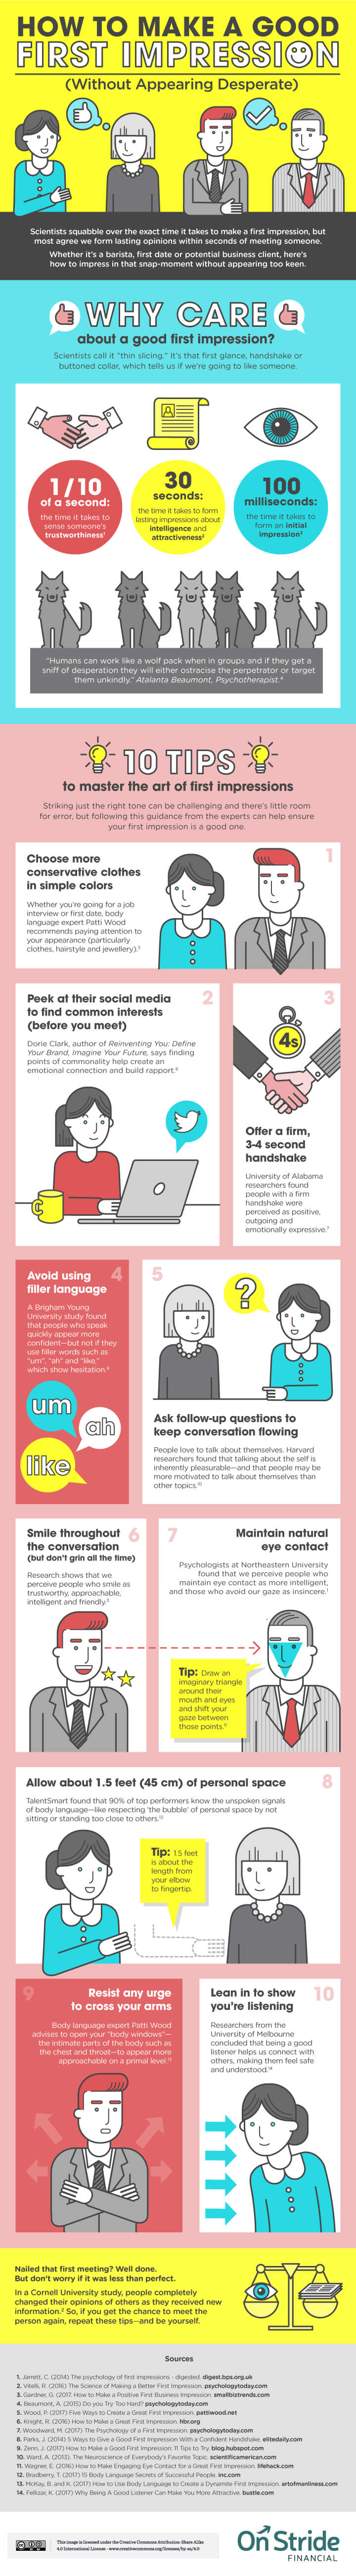 How to Make a Good First Impression Without Appearing Desperate Infographic